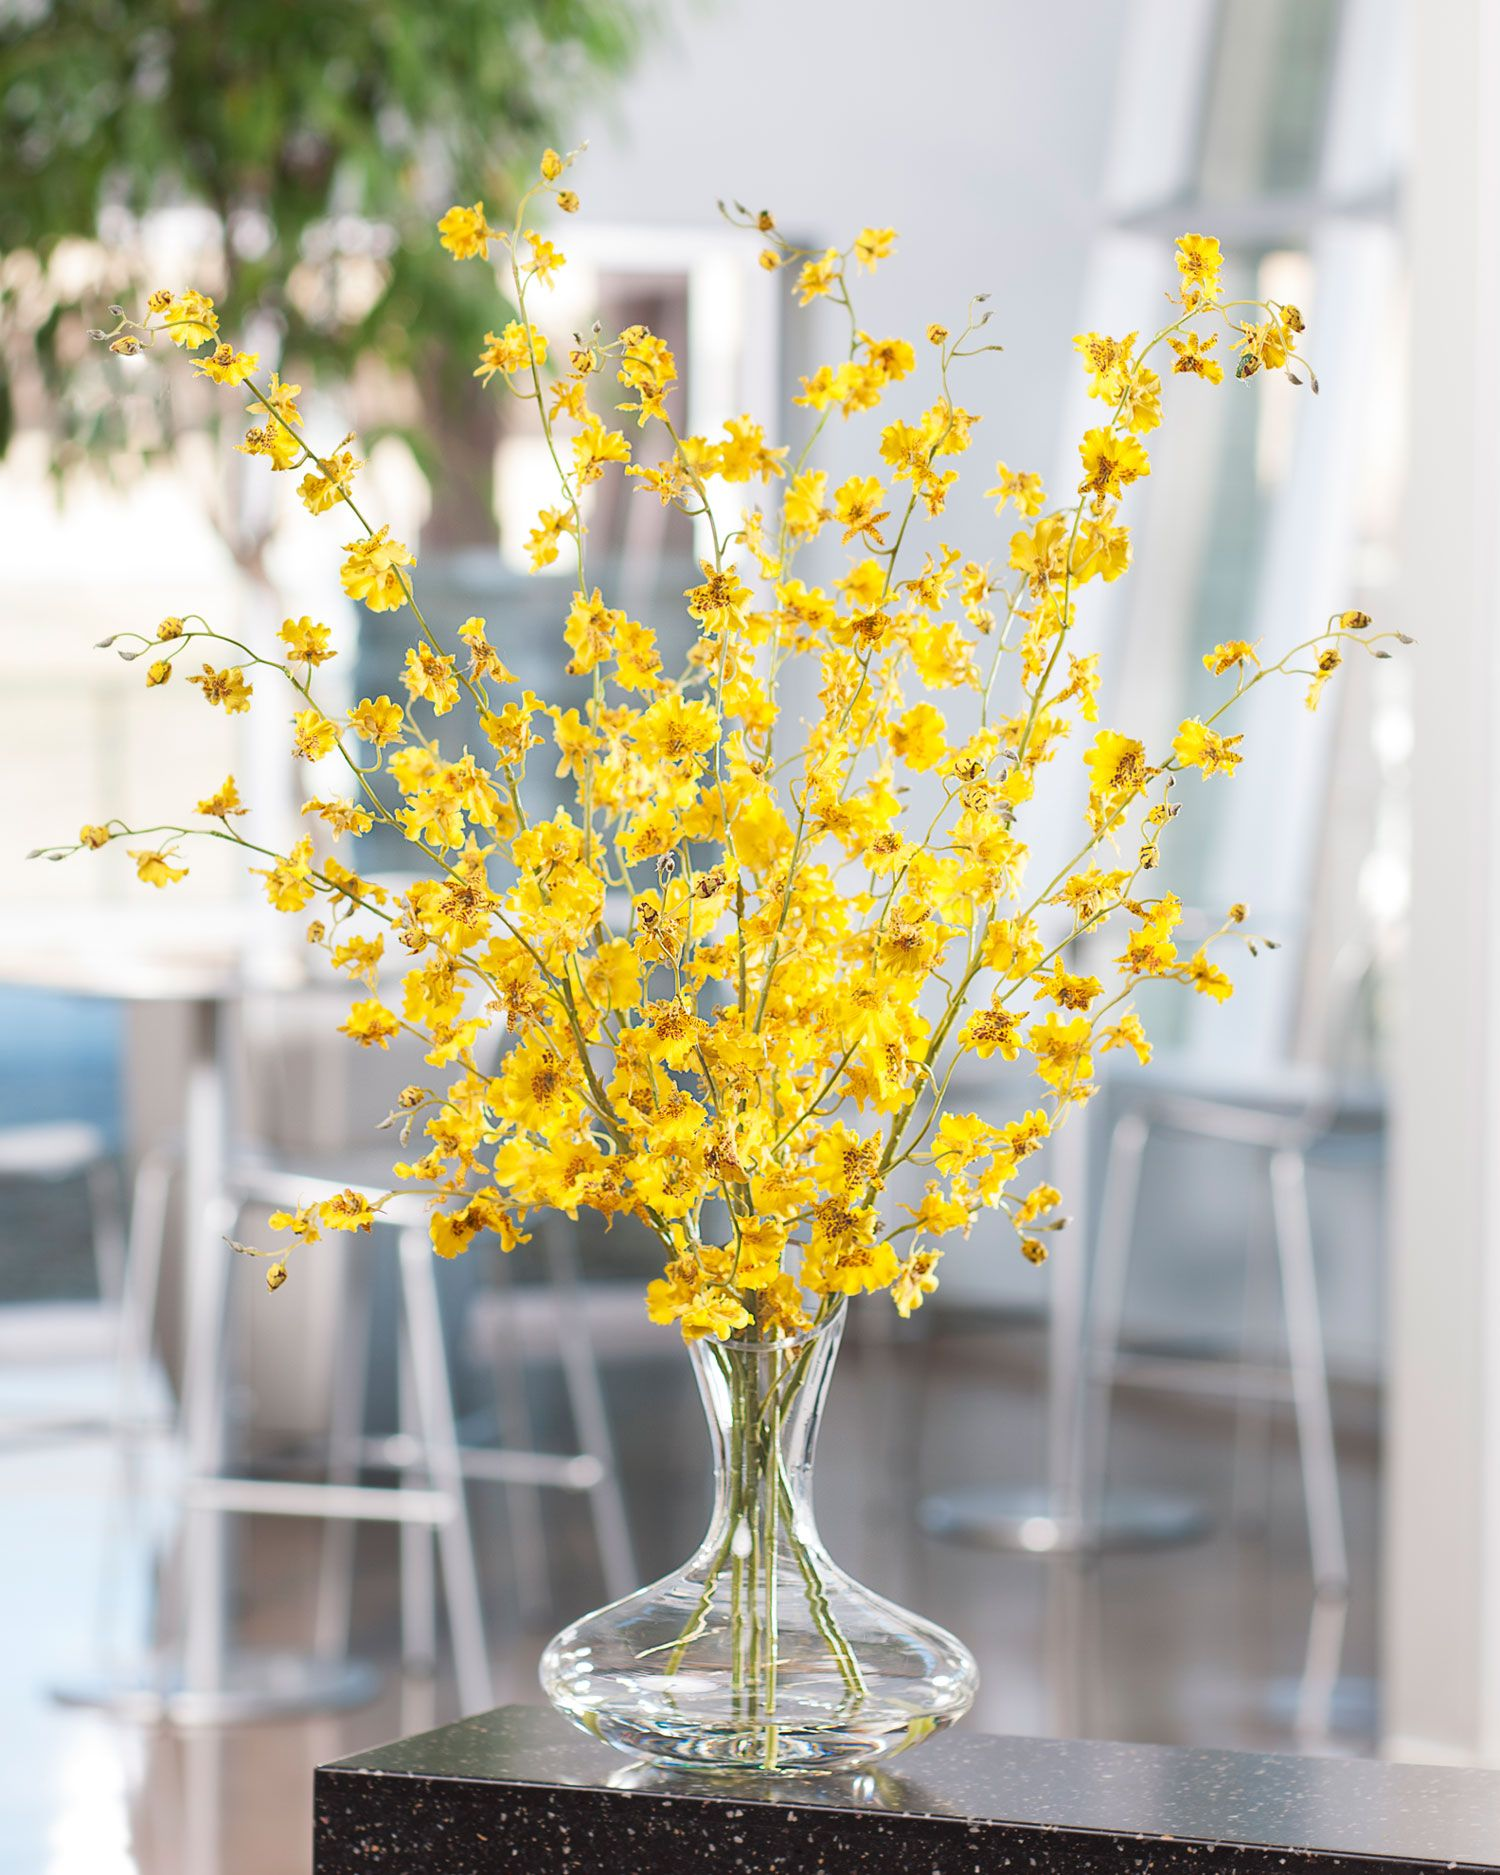 Dancing Oncidium Silk Orchids In Yellow Artificial Orchids Adds Beauty To Any Int Fake Flower Arrangements Flower Arrangements Artificial Flower Arrangements